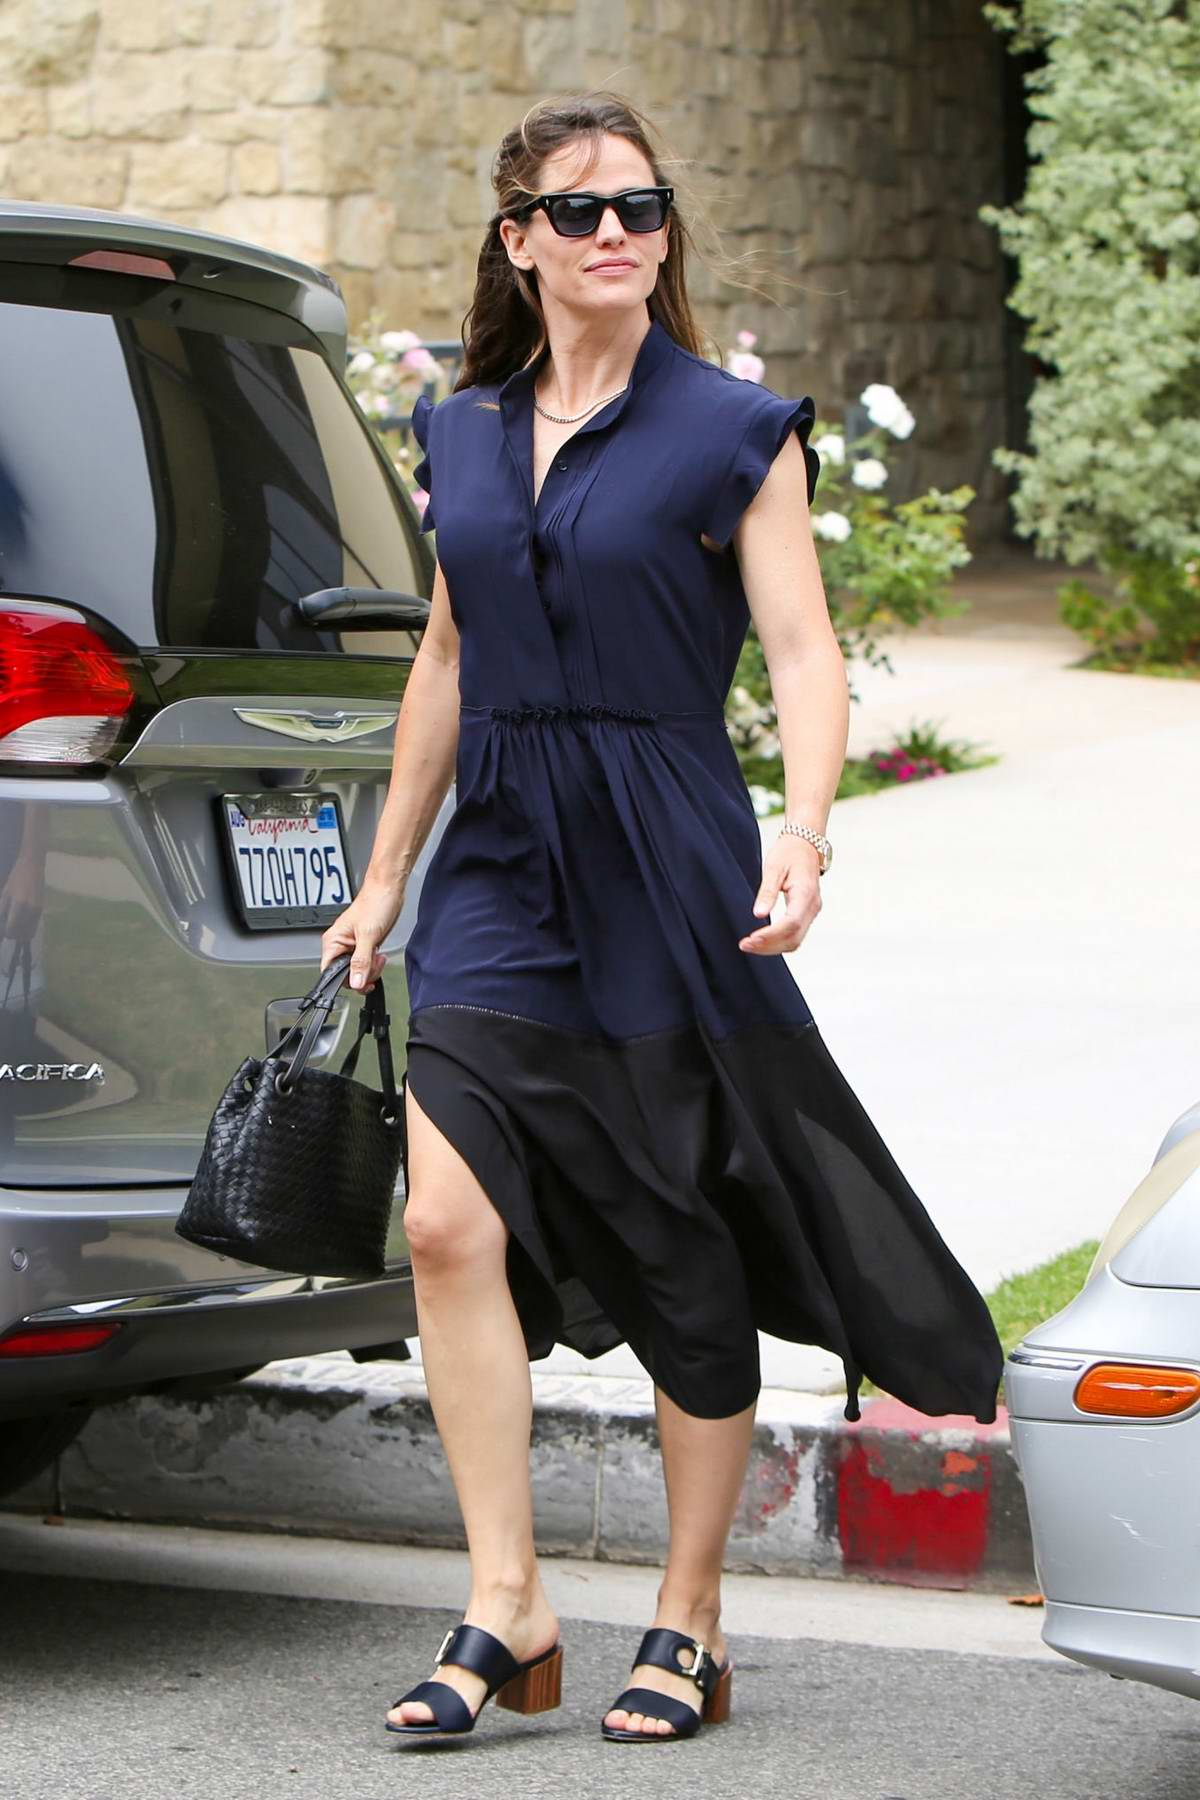 Jennifer Garner looks lovely in a navy blue dress while attending Sunday church service in Los Angeles